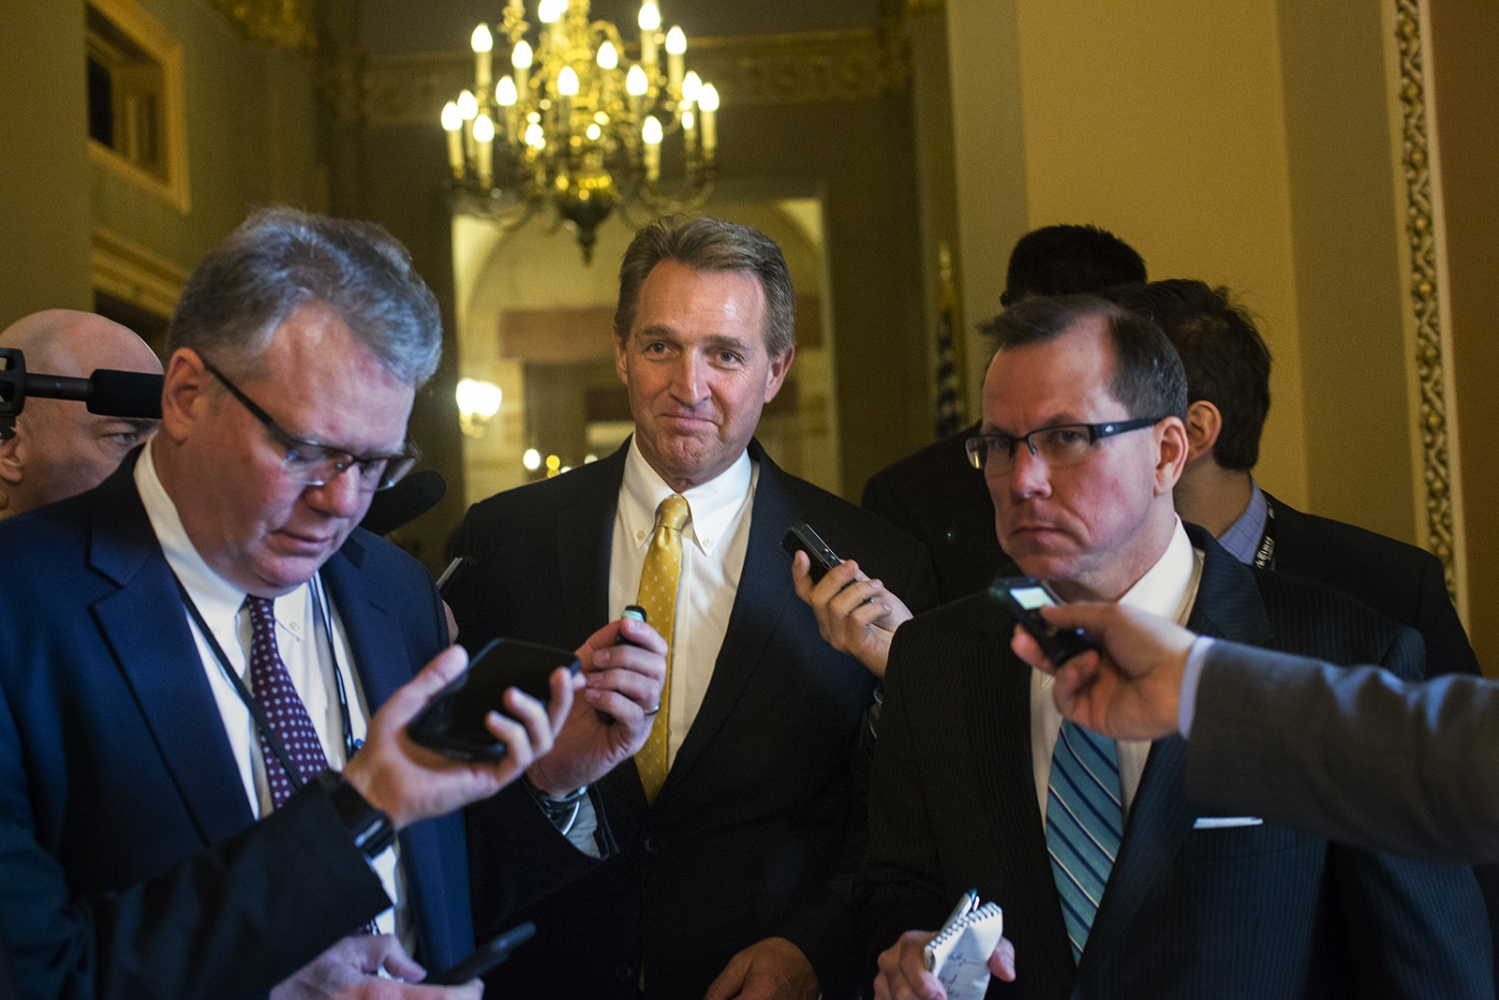 Sen. Jeff Flake answers questions from reporters in the U.S. Capitol Building.